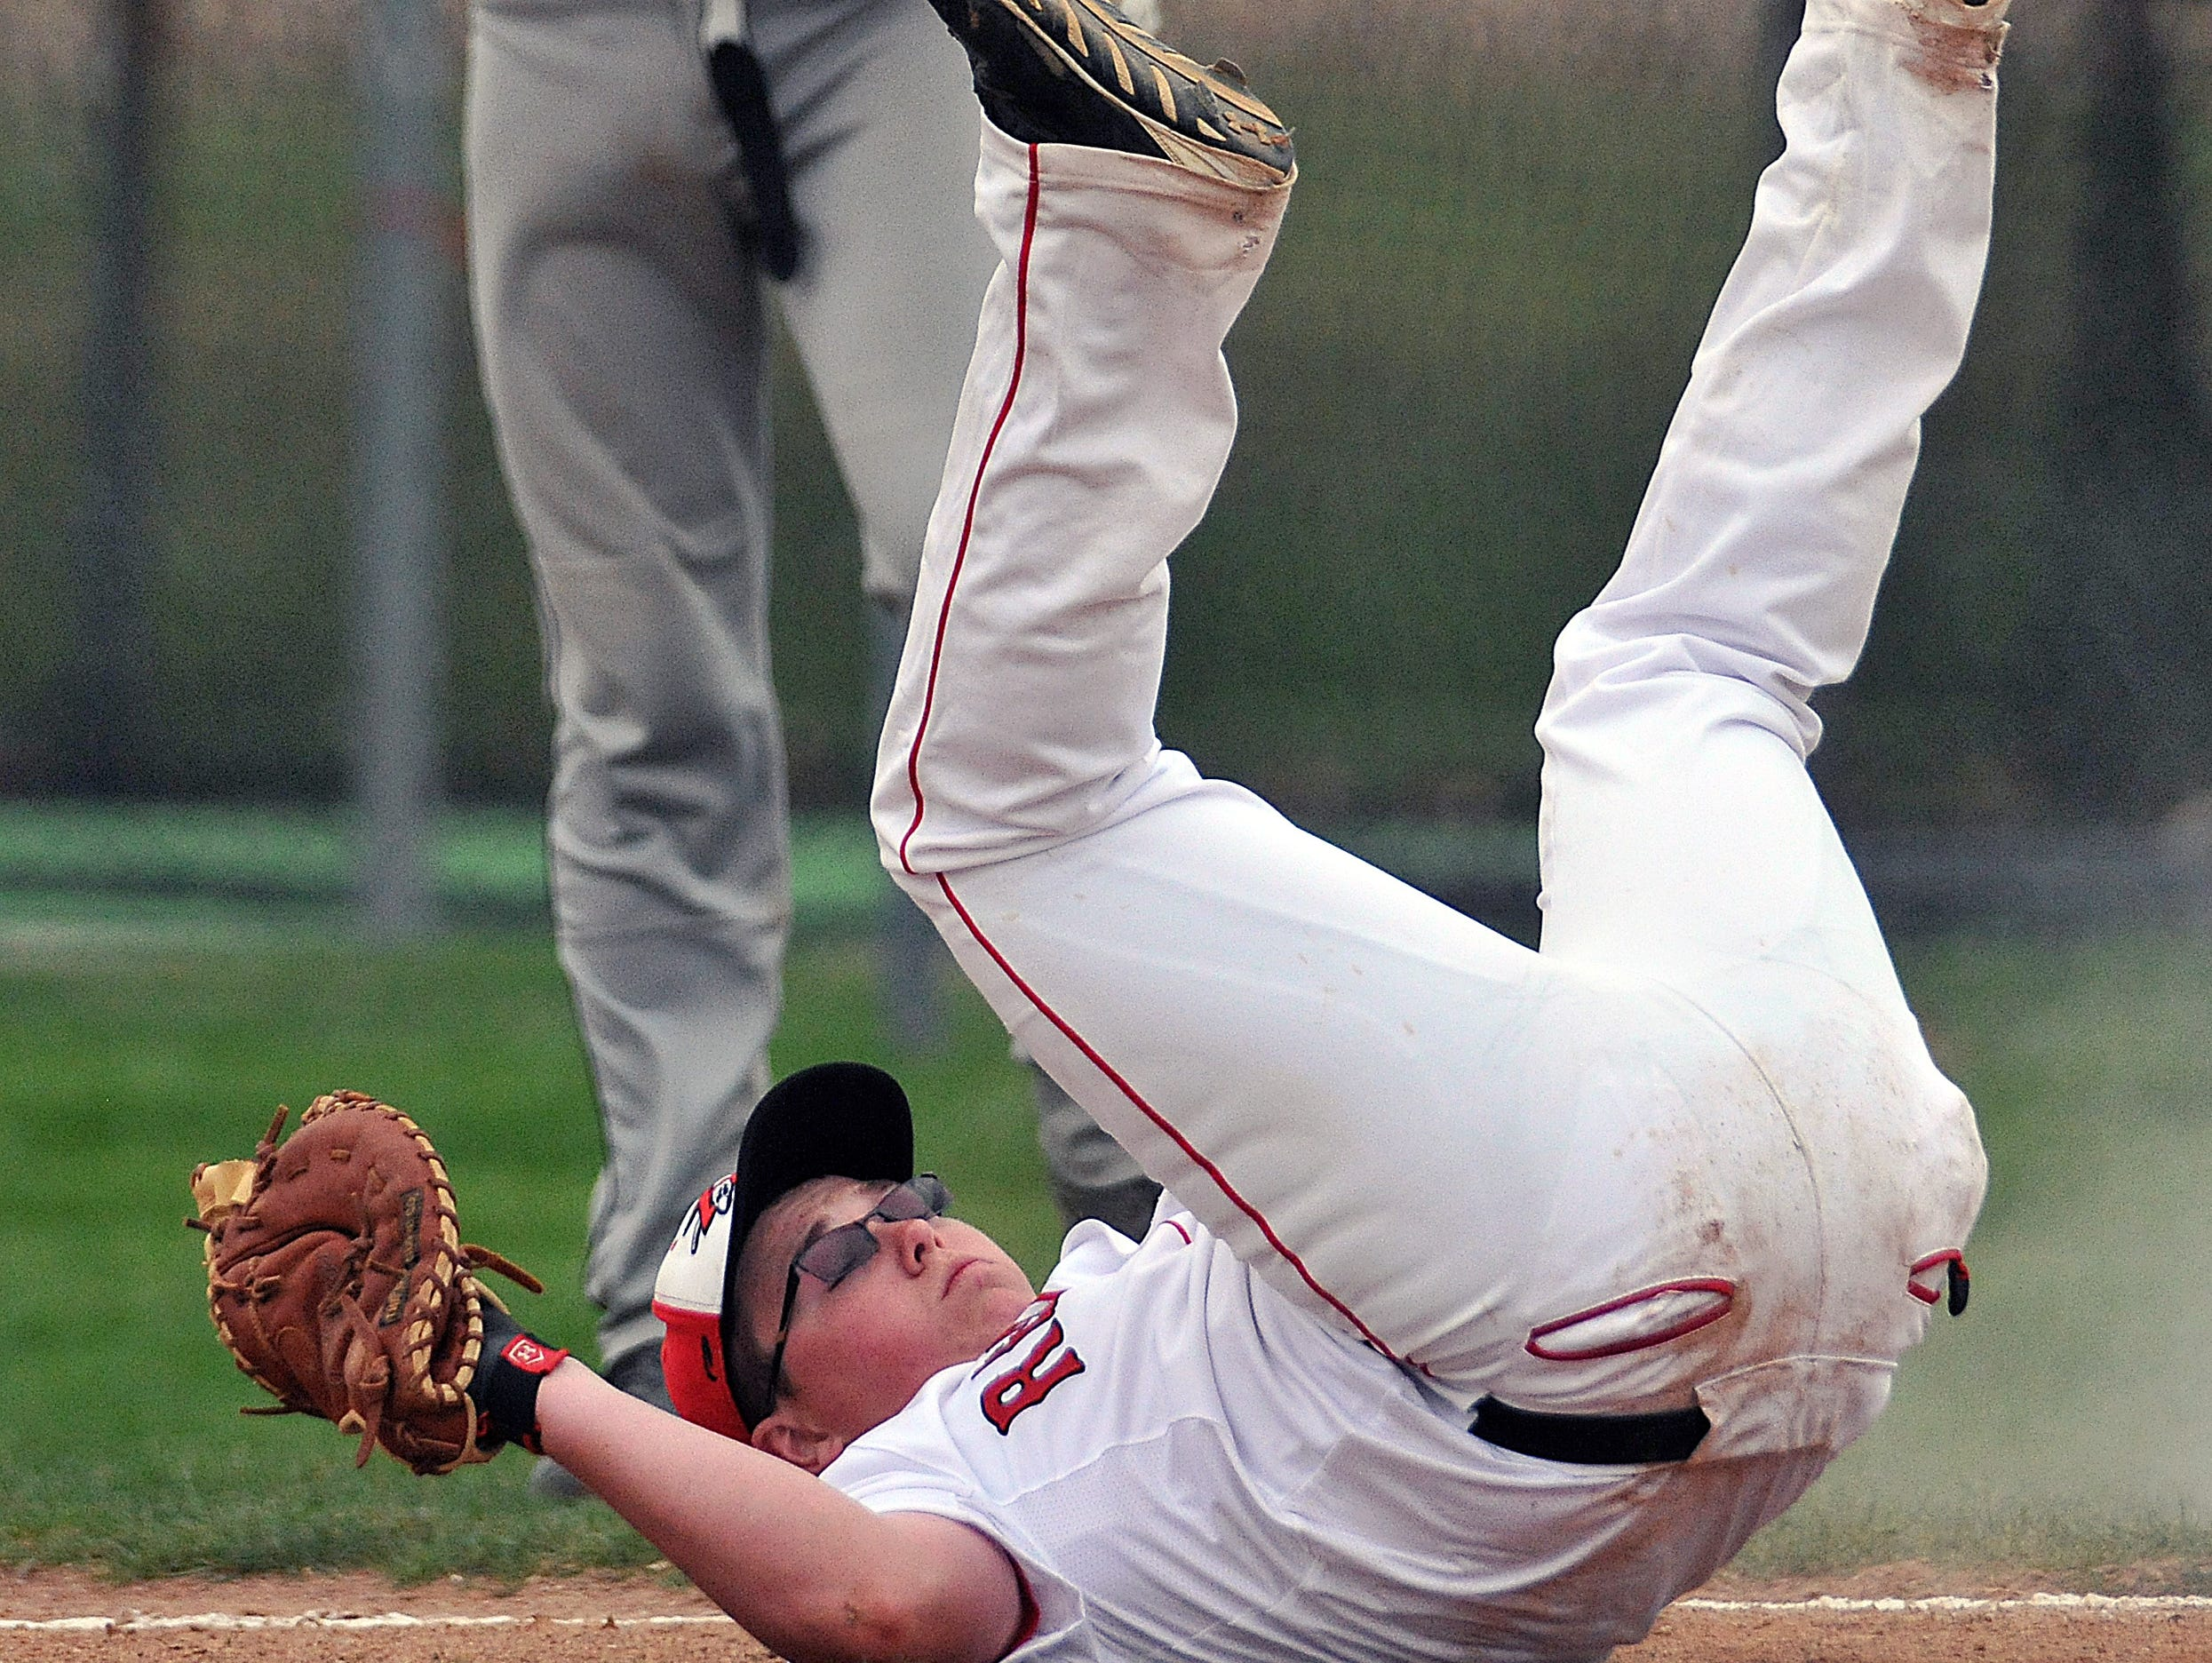 Bucyrus' Nick Kohler comes down after making a play at first base during a game Thursday against Colonel Crawford.